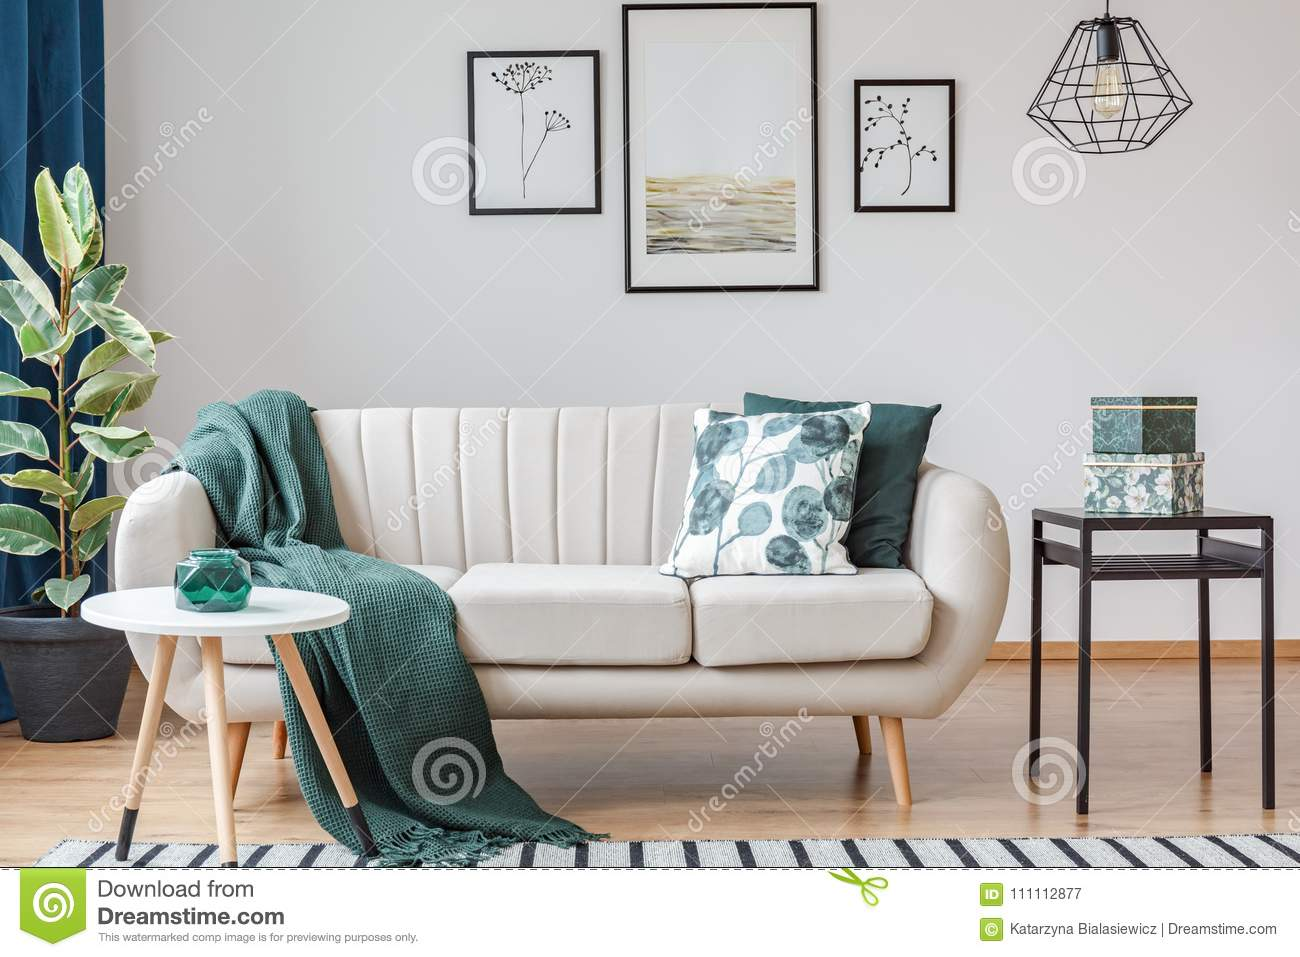 Green living room with gallery